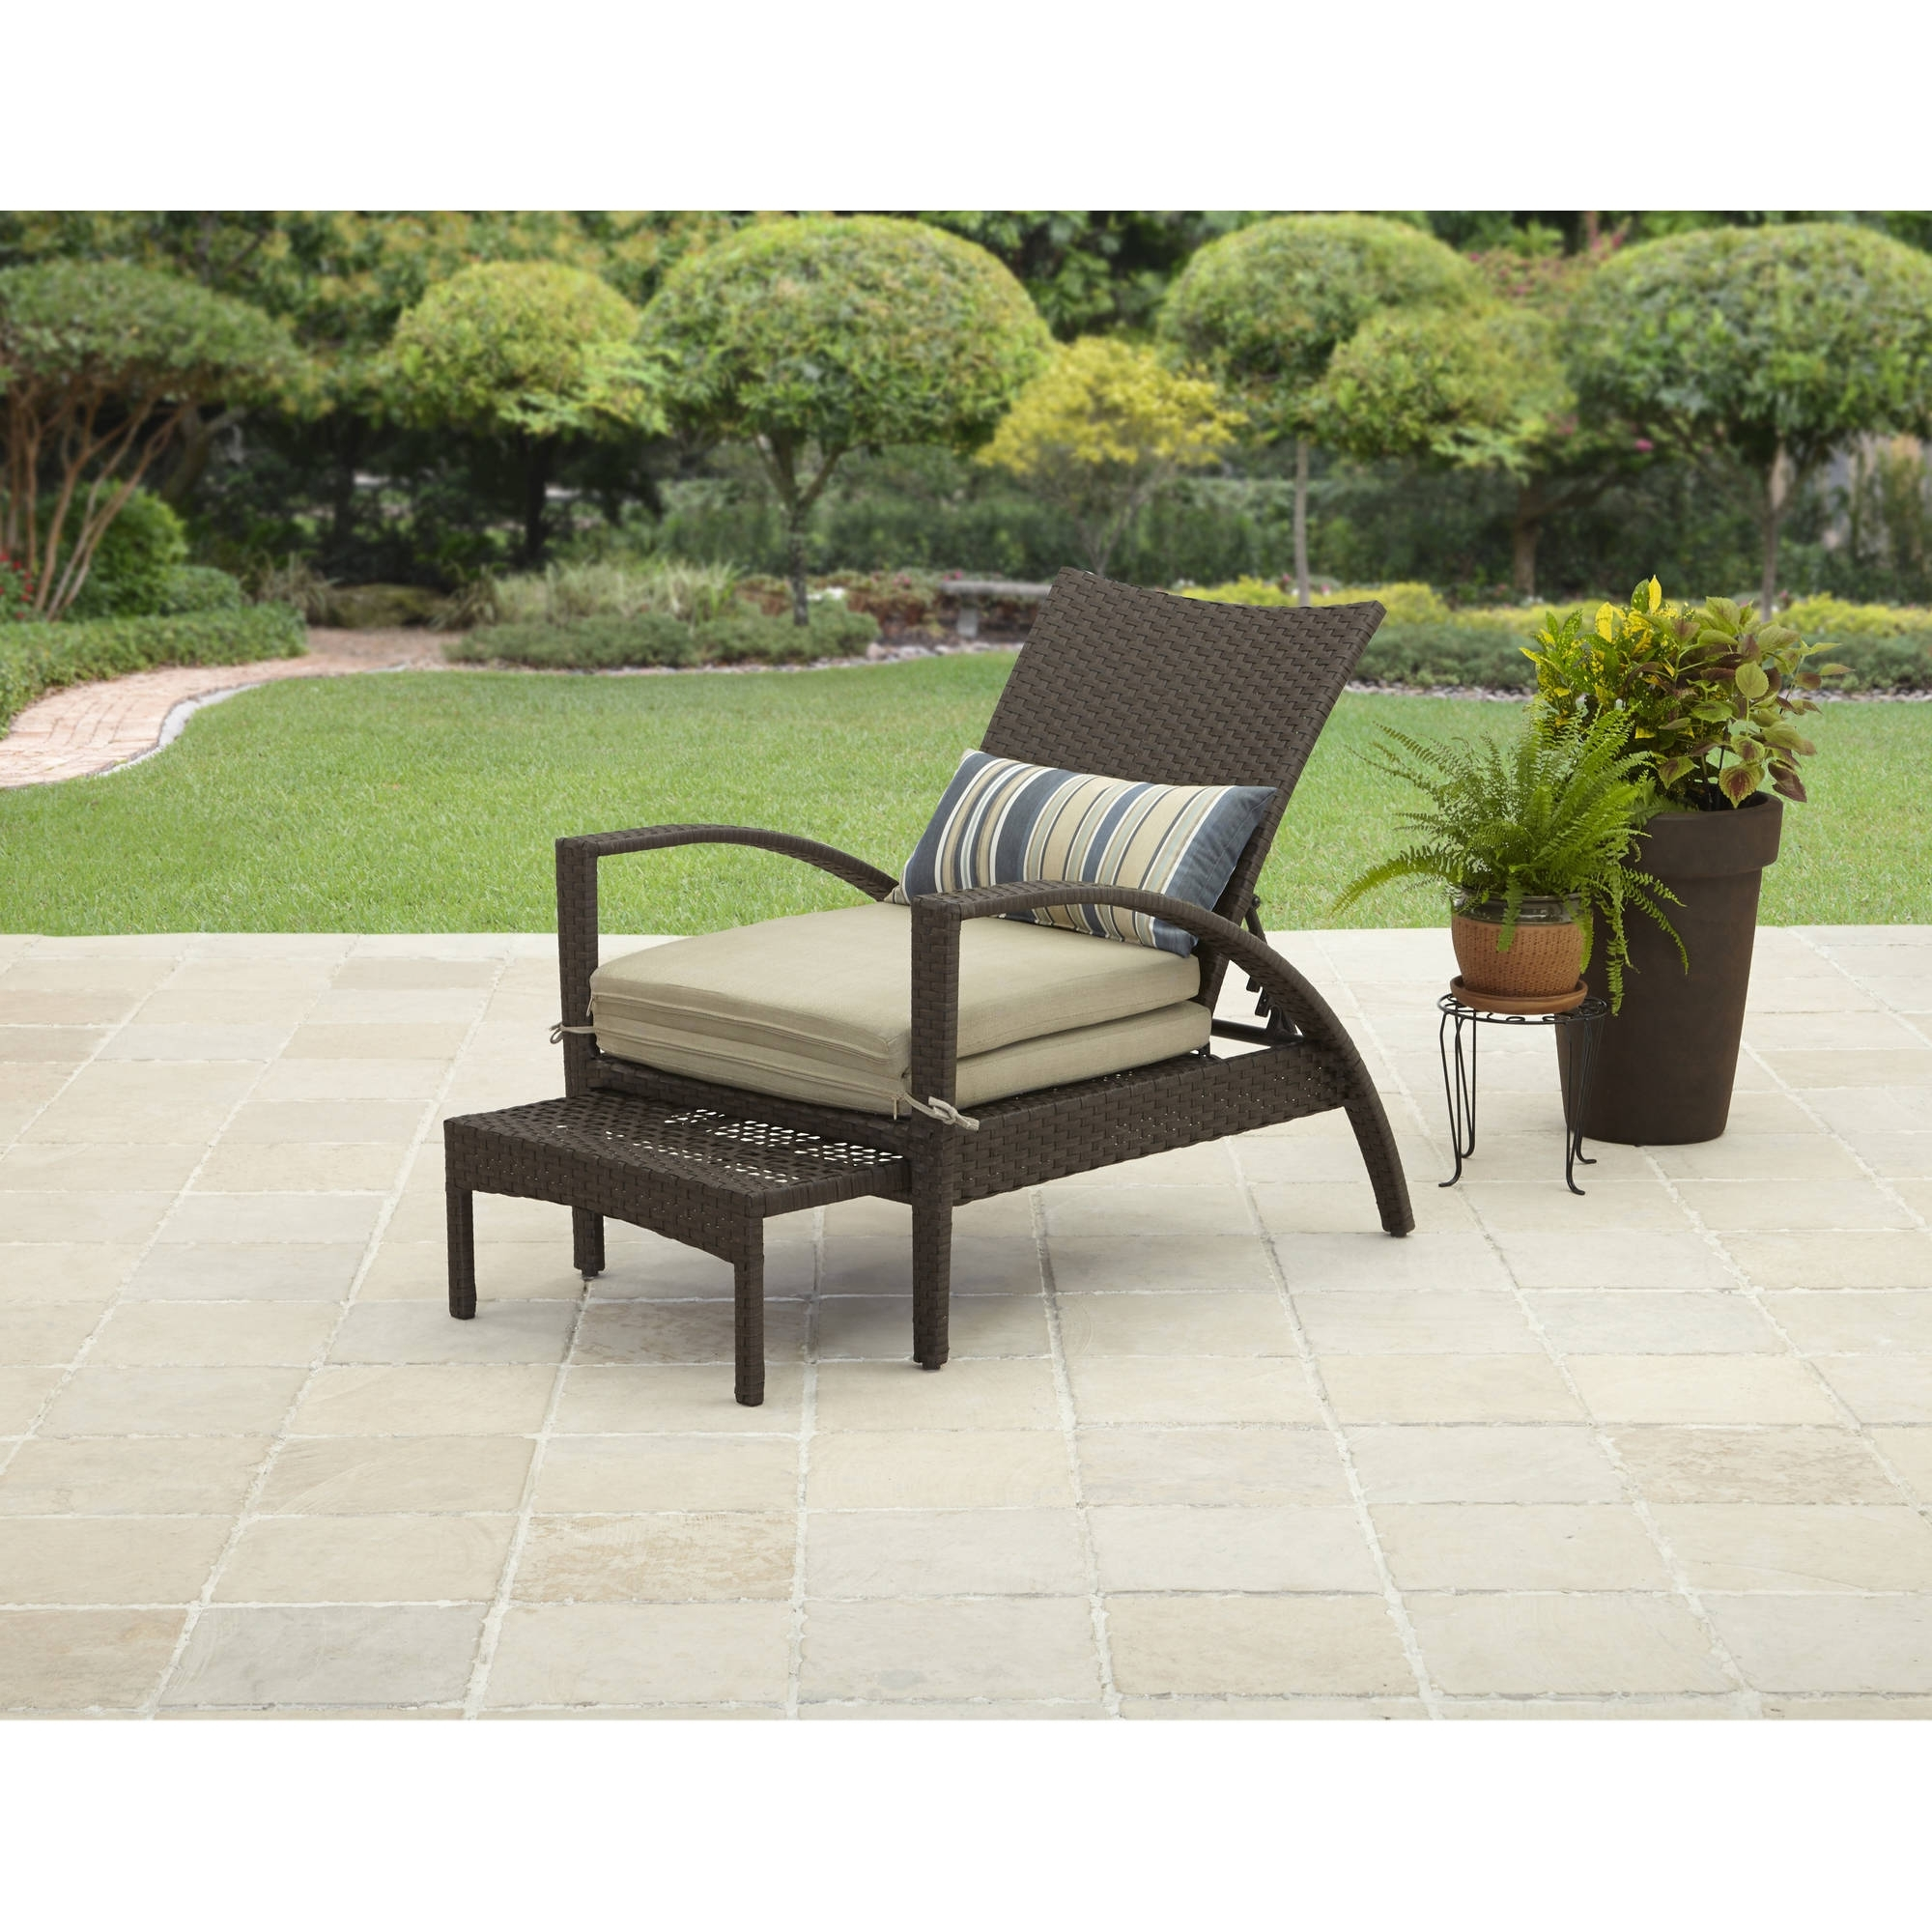 Walmart Chaises Pertaining To Famous Better Homes And Gardens Avila Beach Pull Out Chaise – Walmart (View 11 of 15)